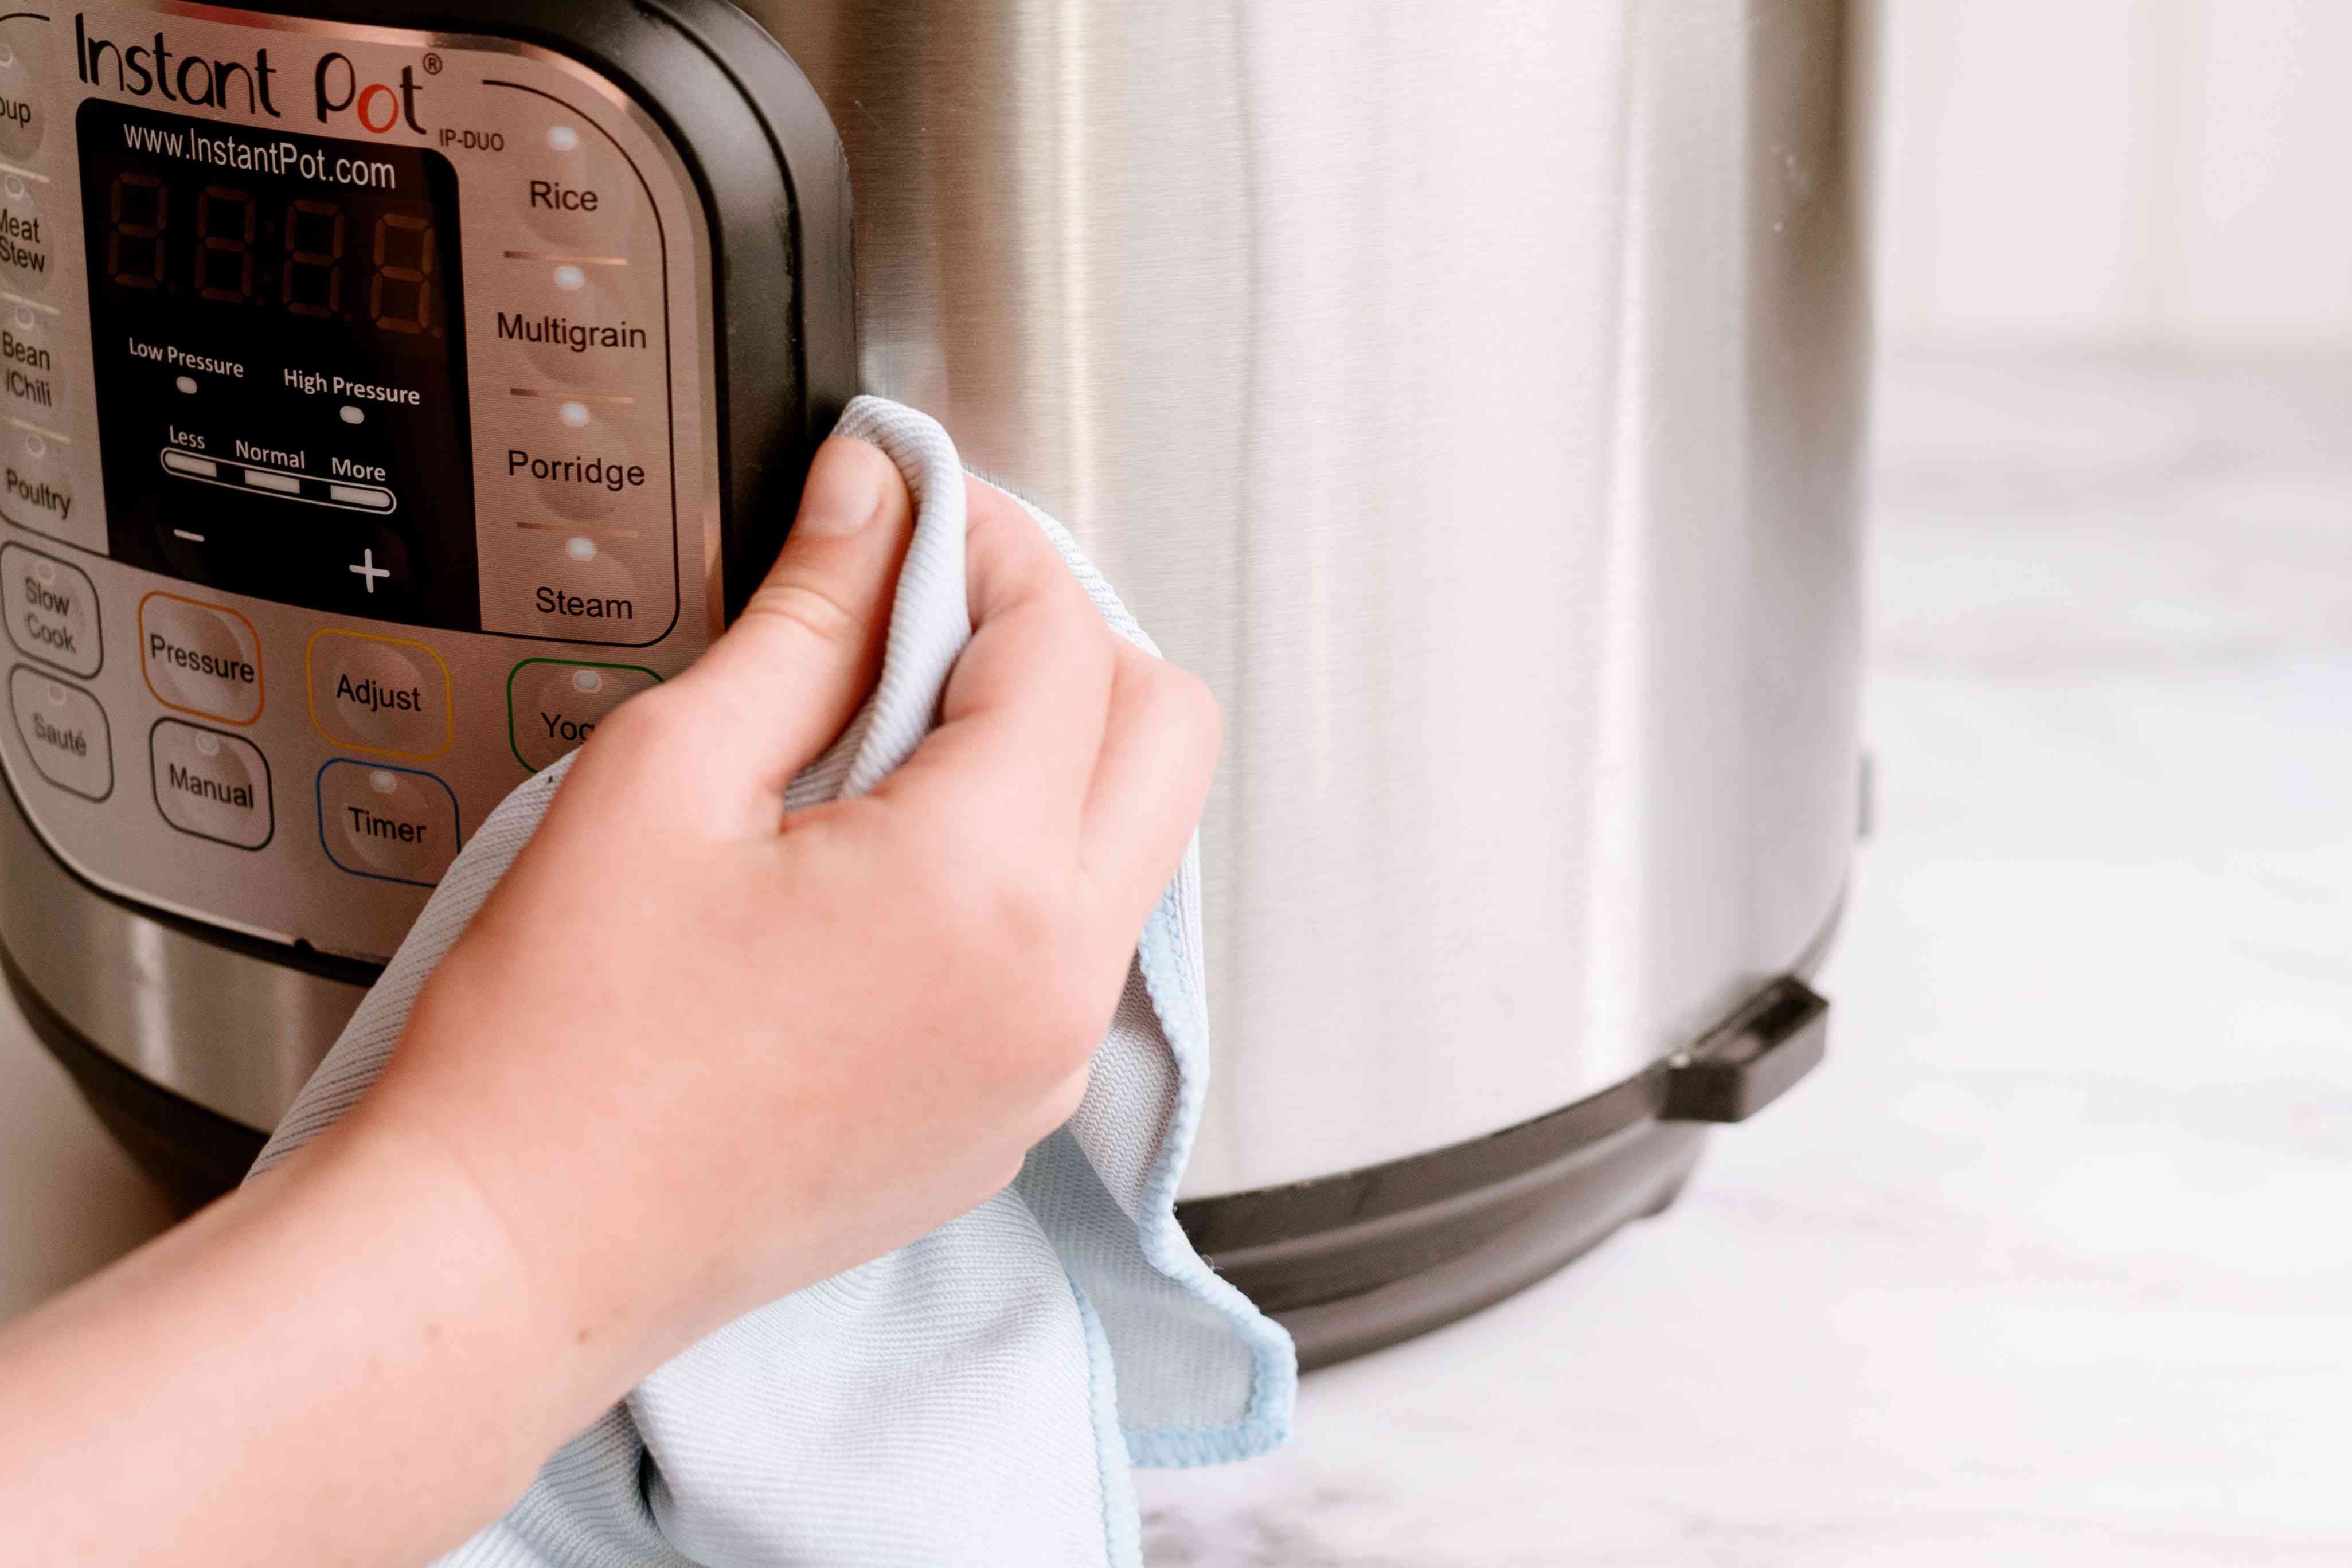 wiping the instant pot dry